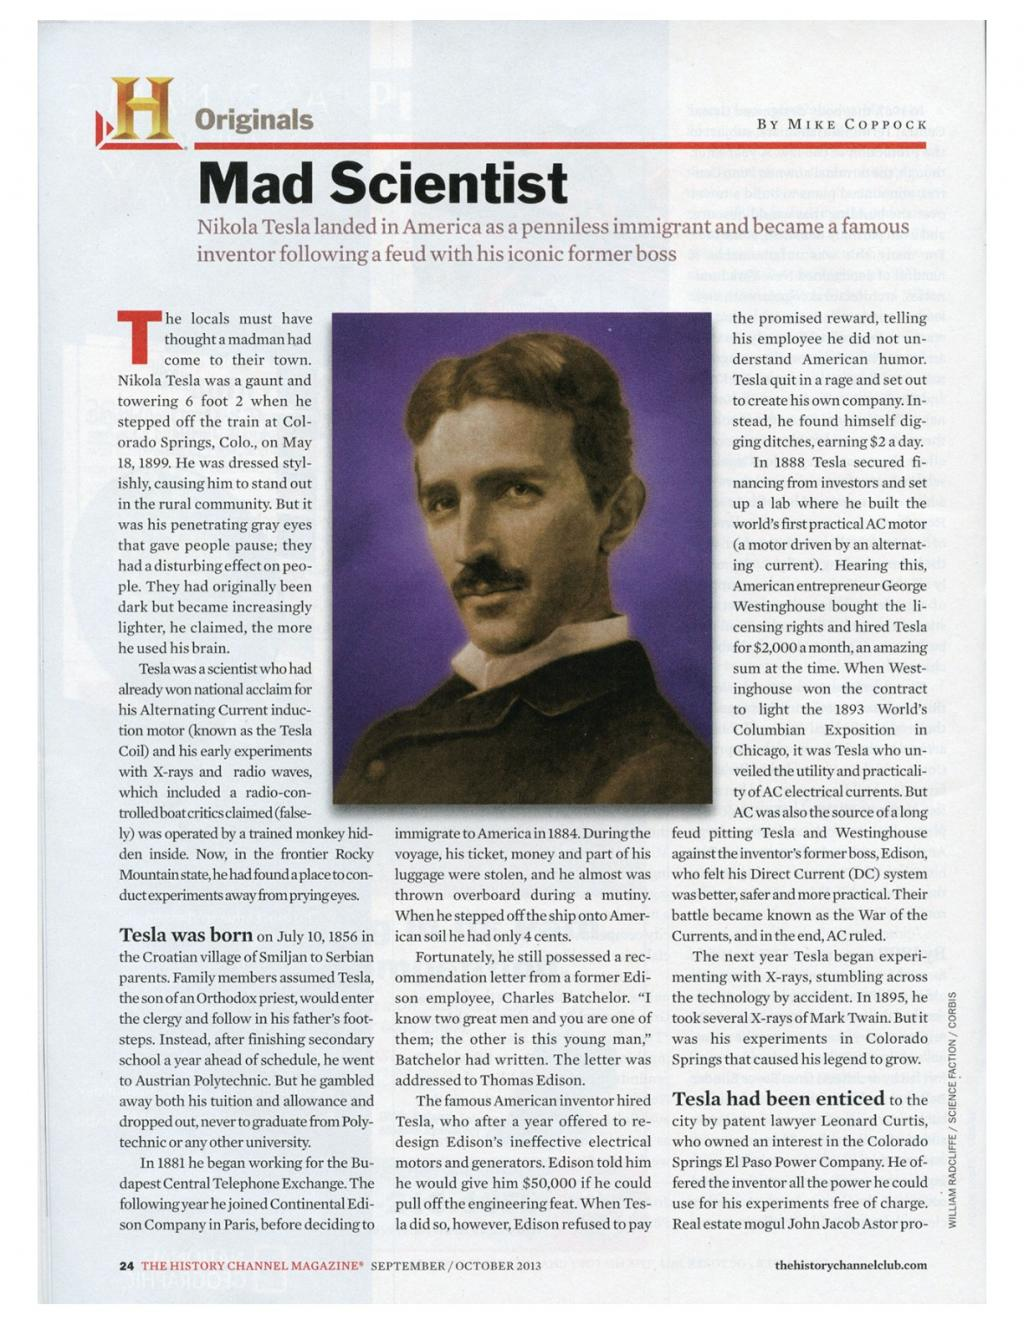 Preview of Mad Scientist article